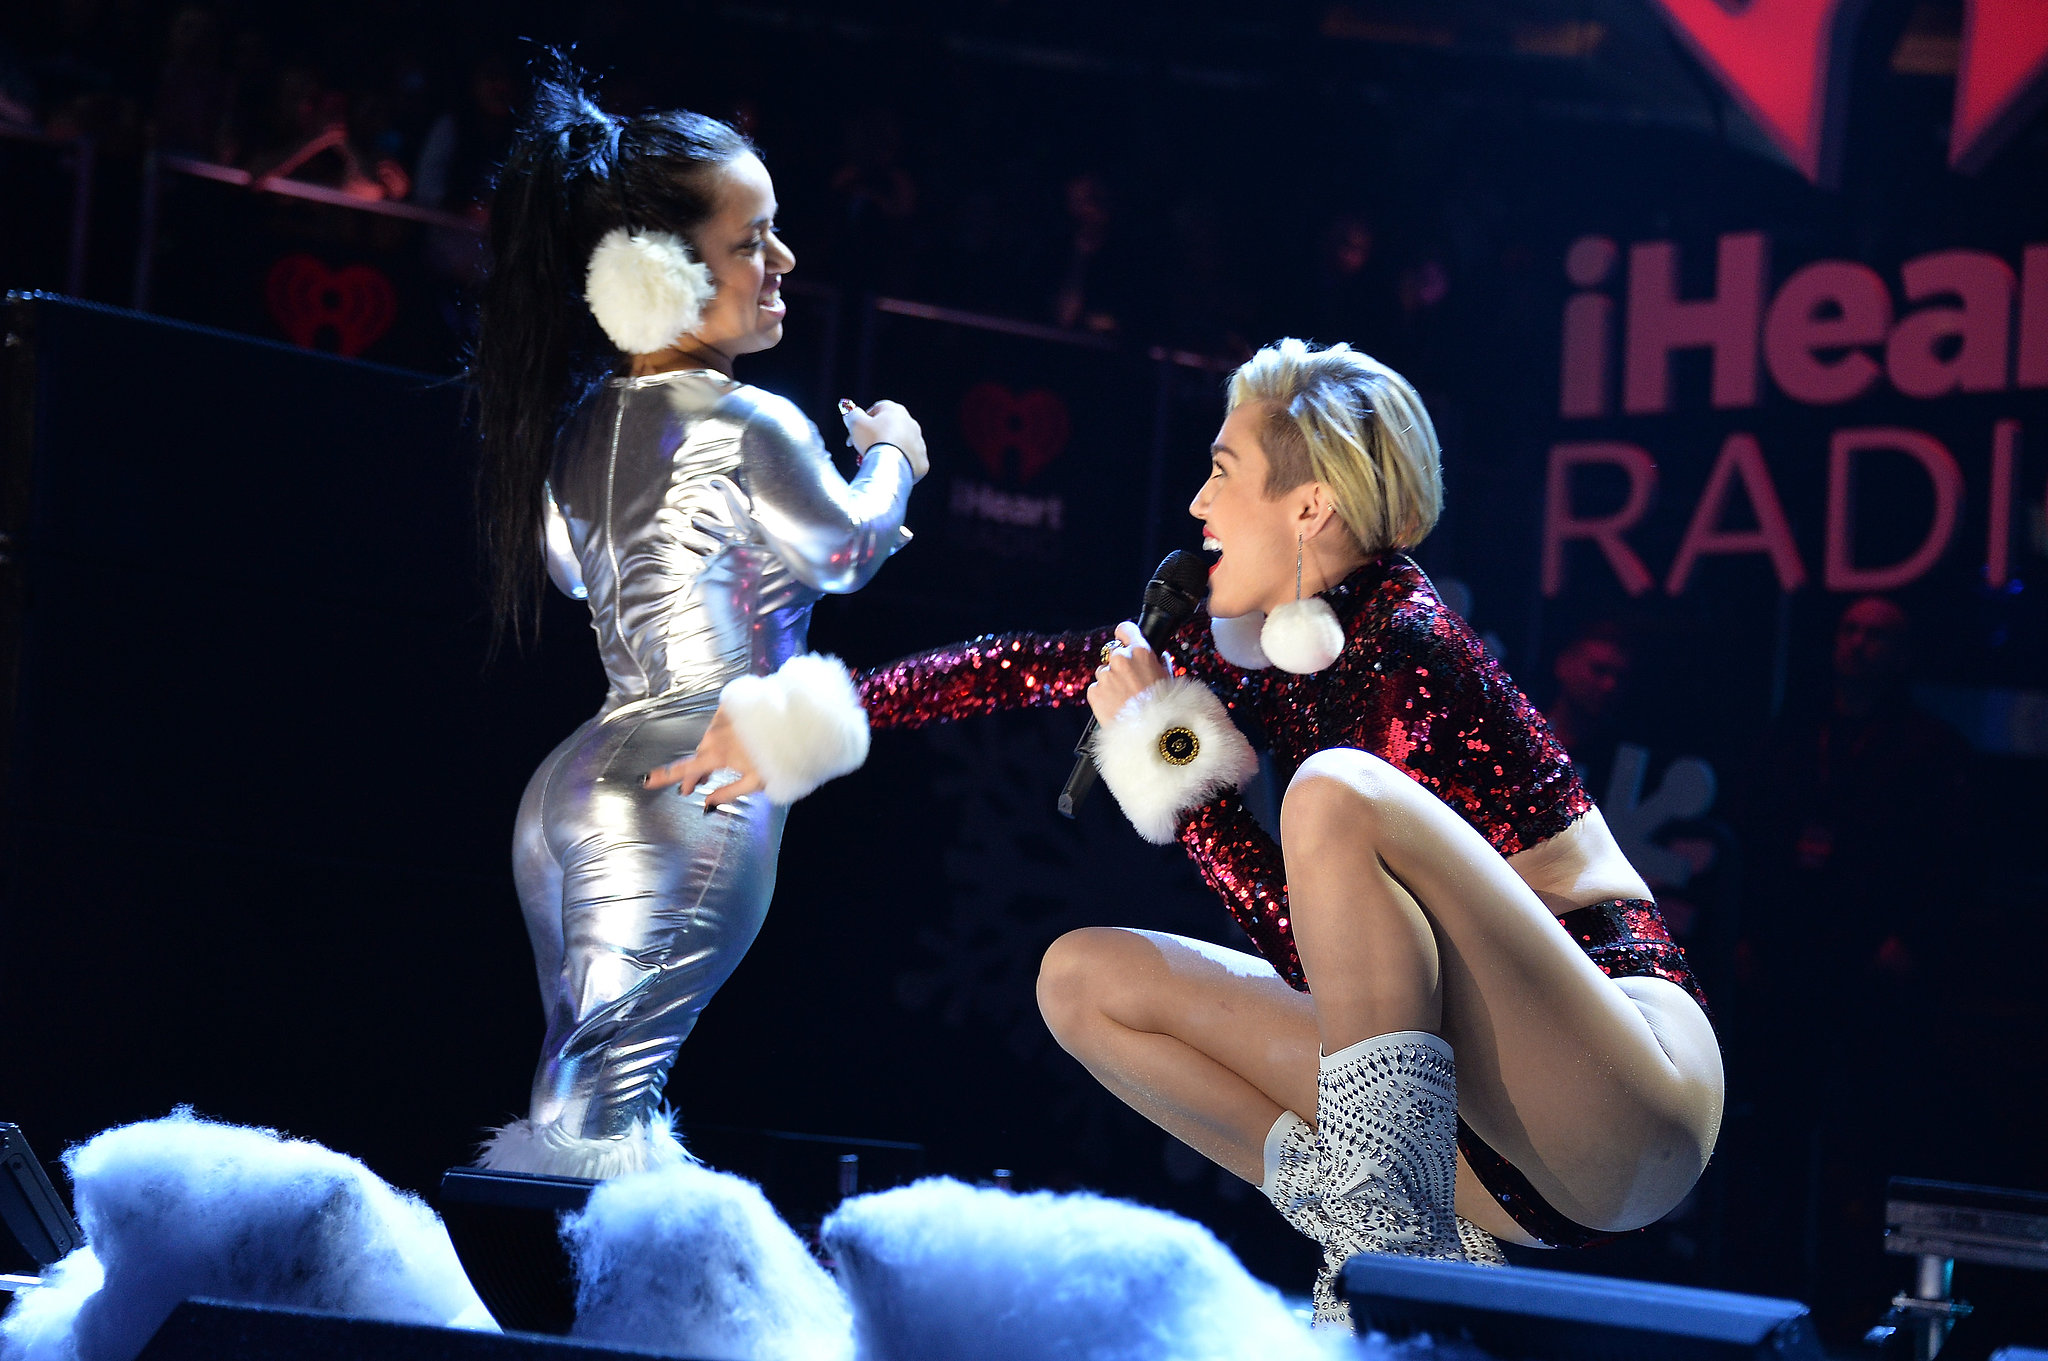 Miley Cyrus performed at the Jingle Ball.